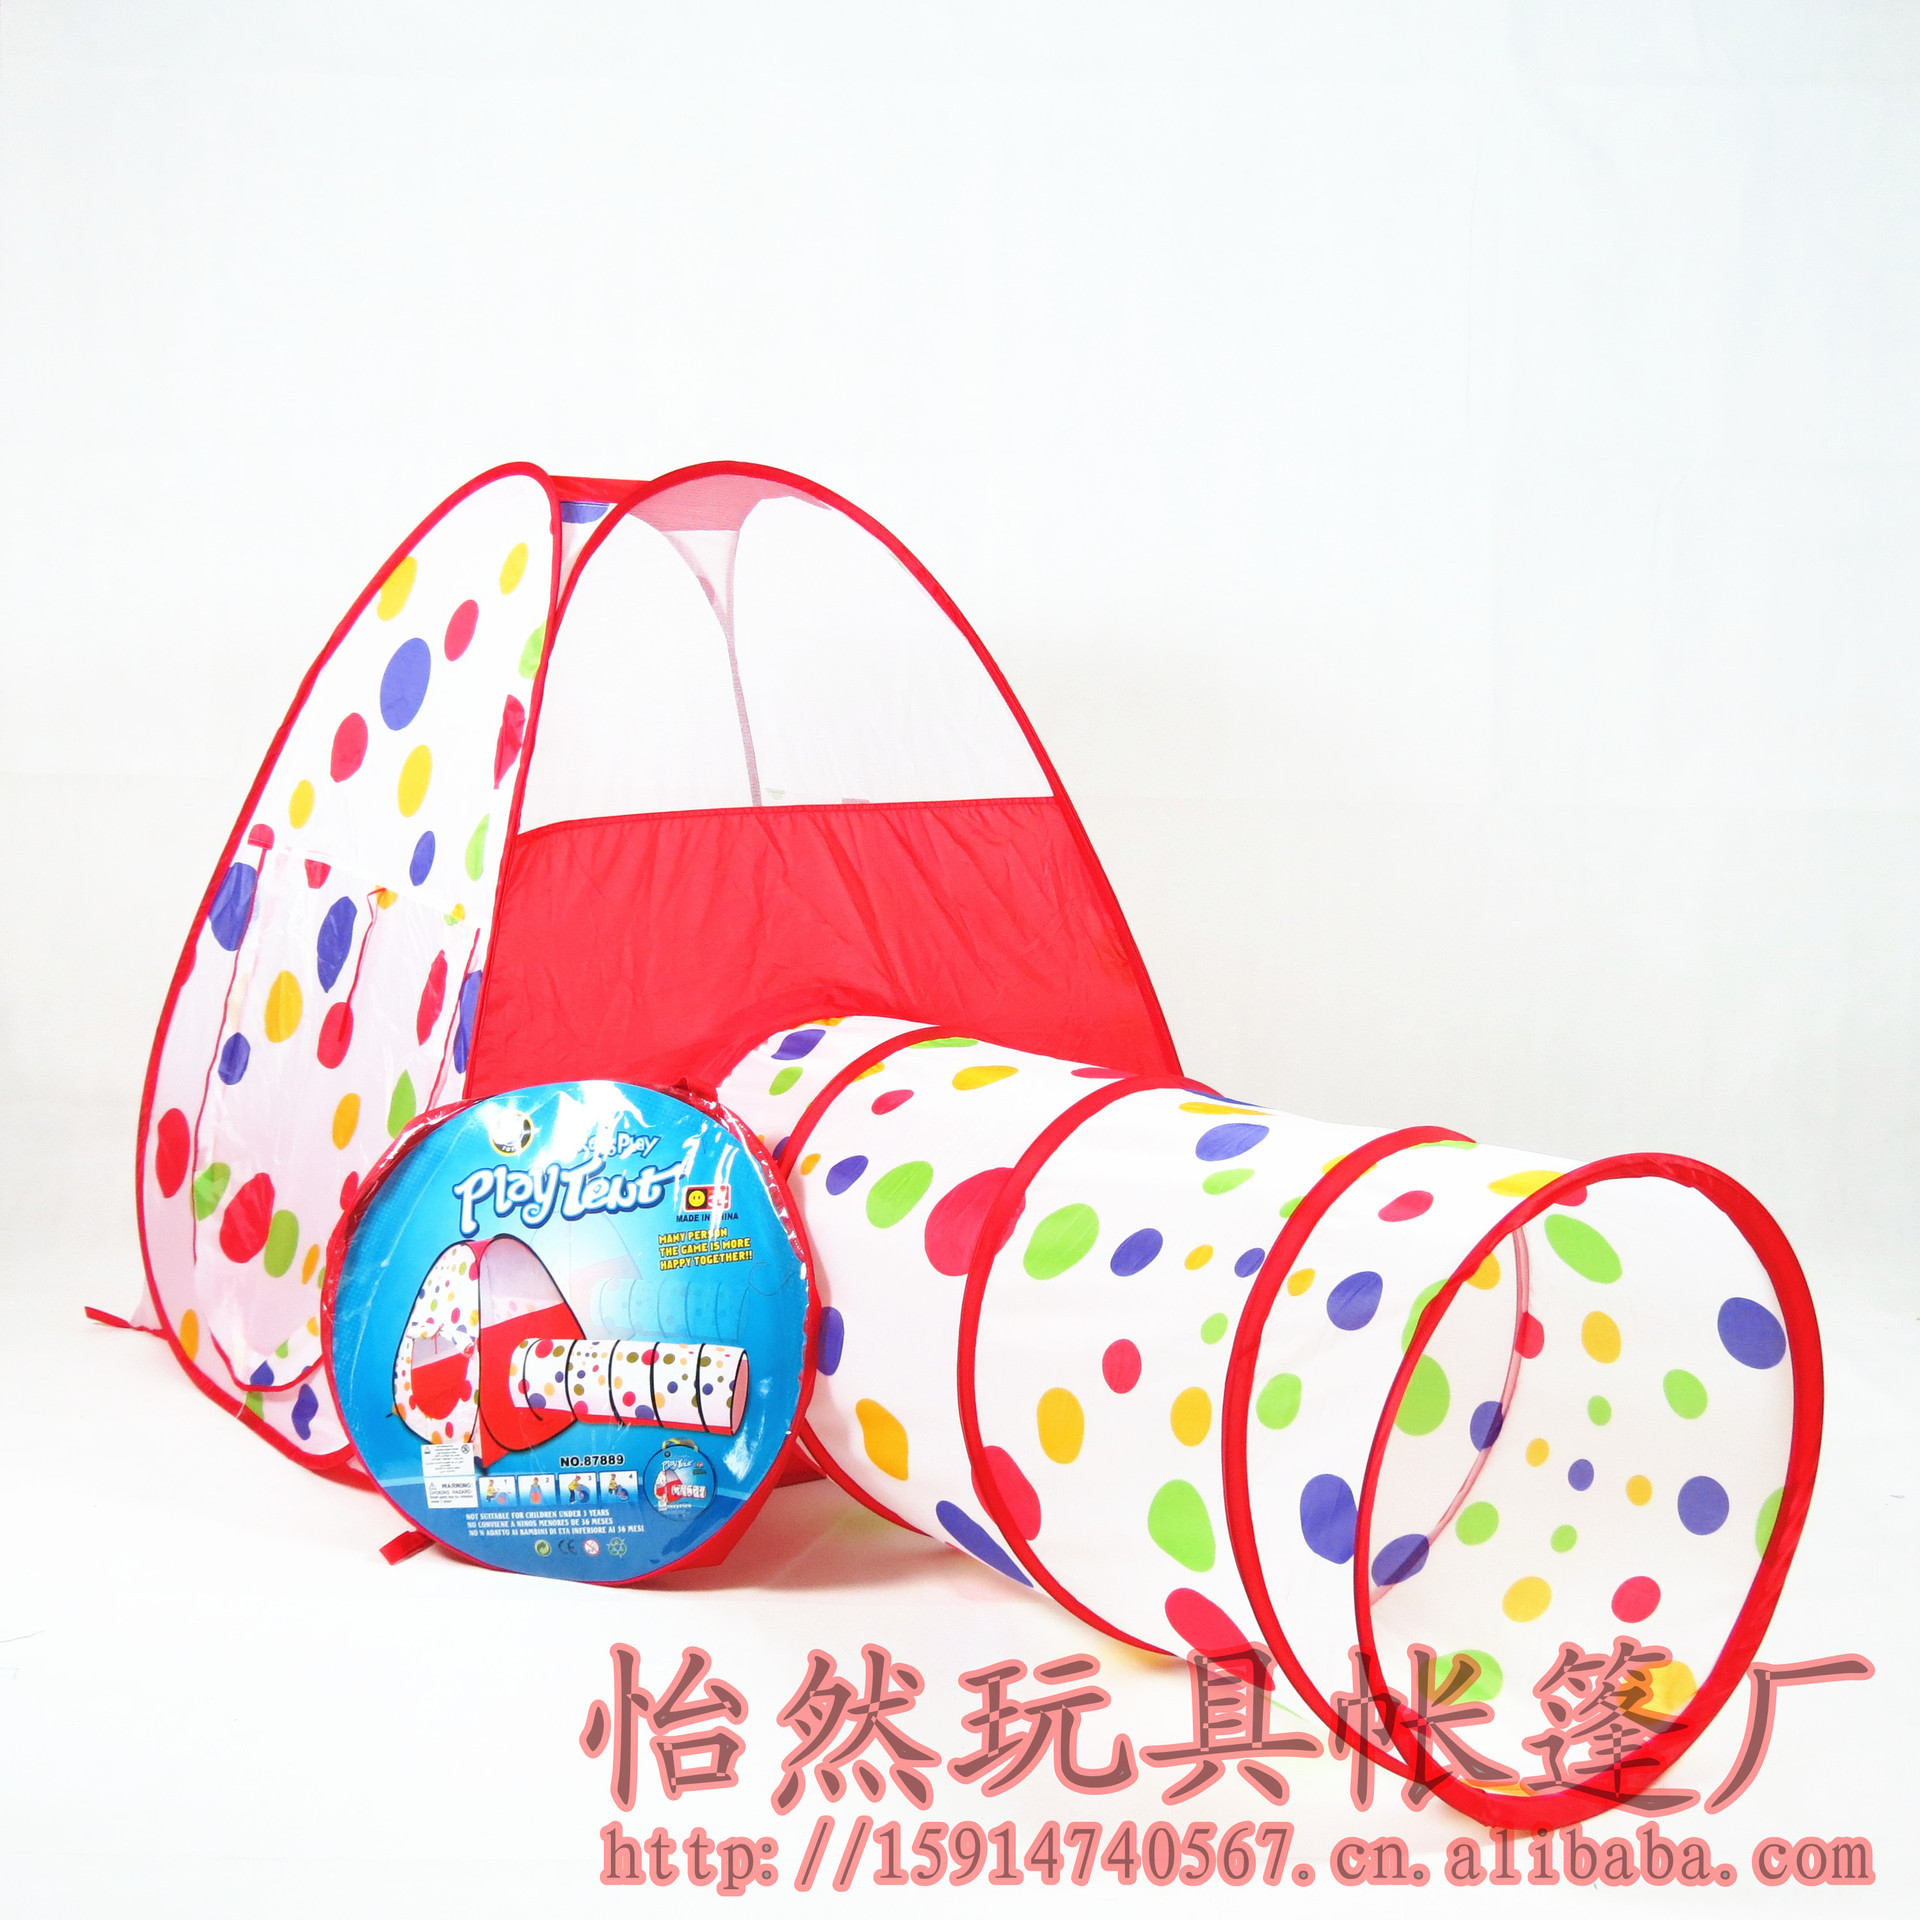 Extra large Kids Play tent Foldable Game Room play House Children Birthday gift toys red dot Tent children tent game house(China (Mainland))